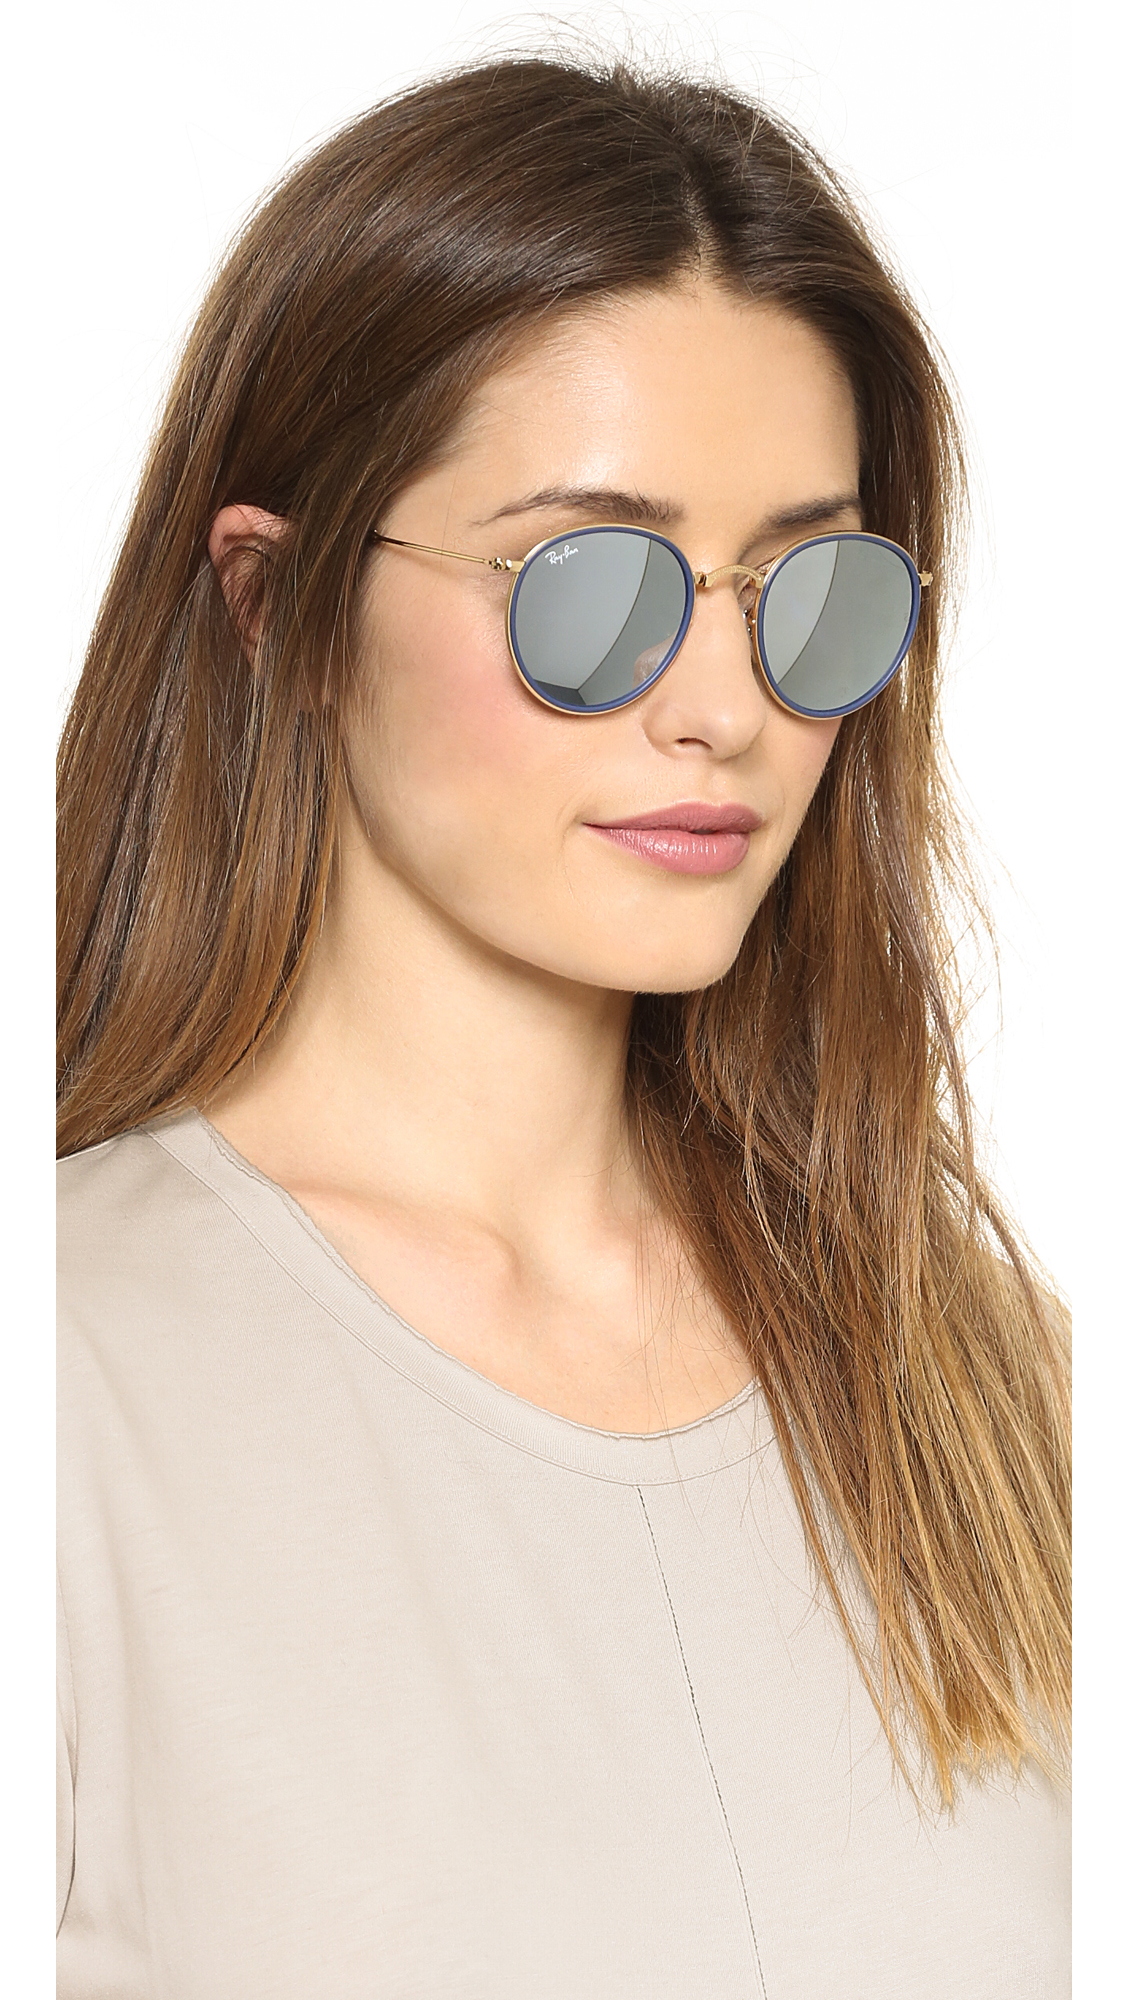 Ray Ban Women's Round Sunglasses